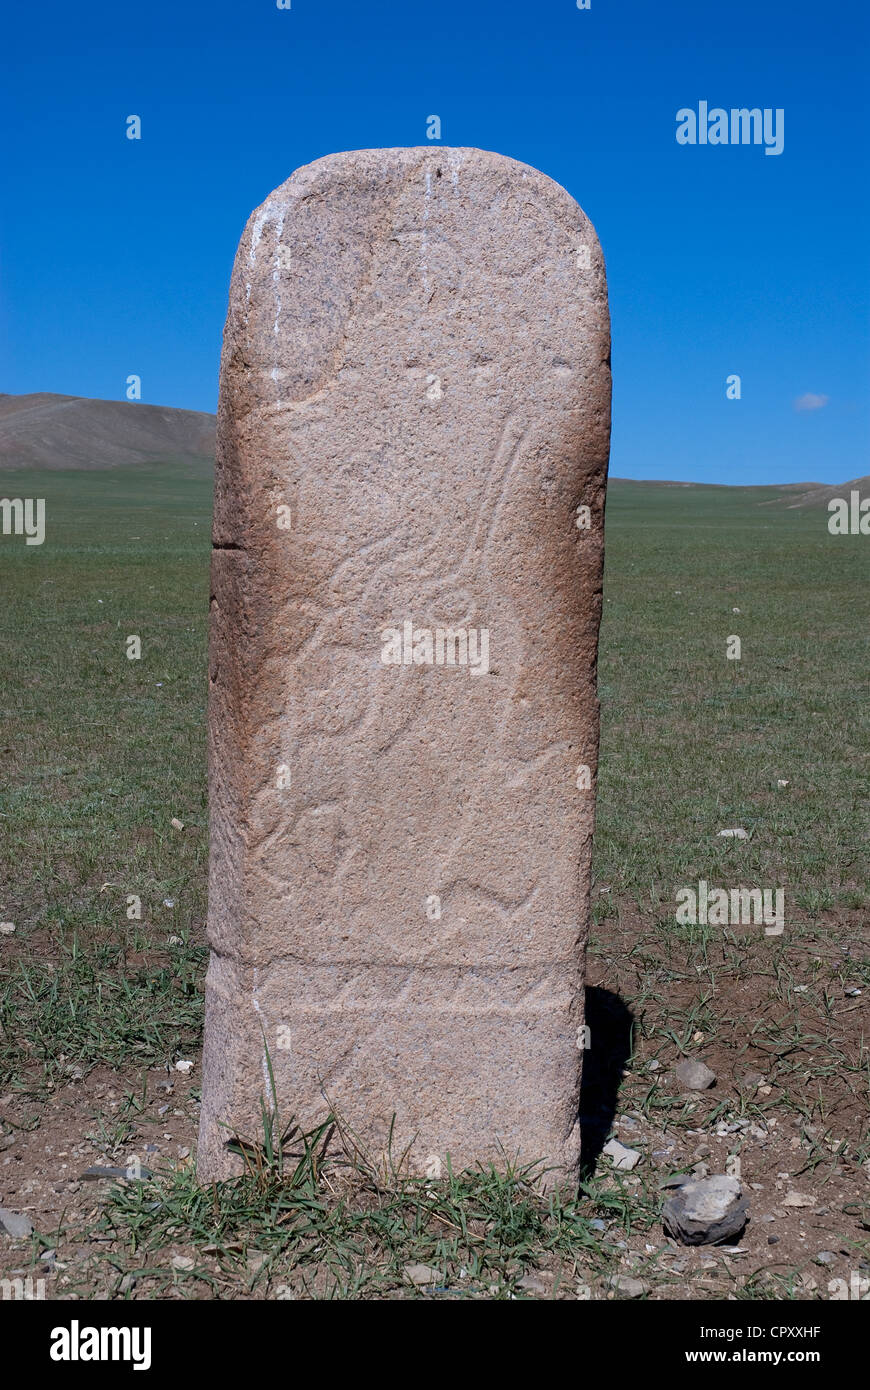 Mongolia, Khuvsgul region, sculpted stele representing a deer in homage to the ancesors dated 3th century - Stock Image